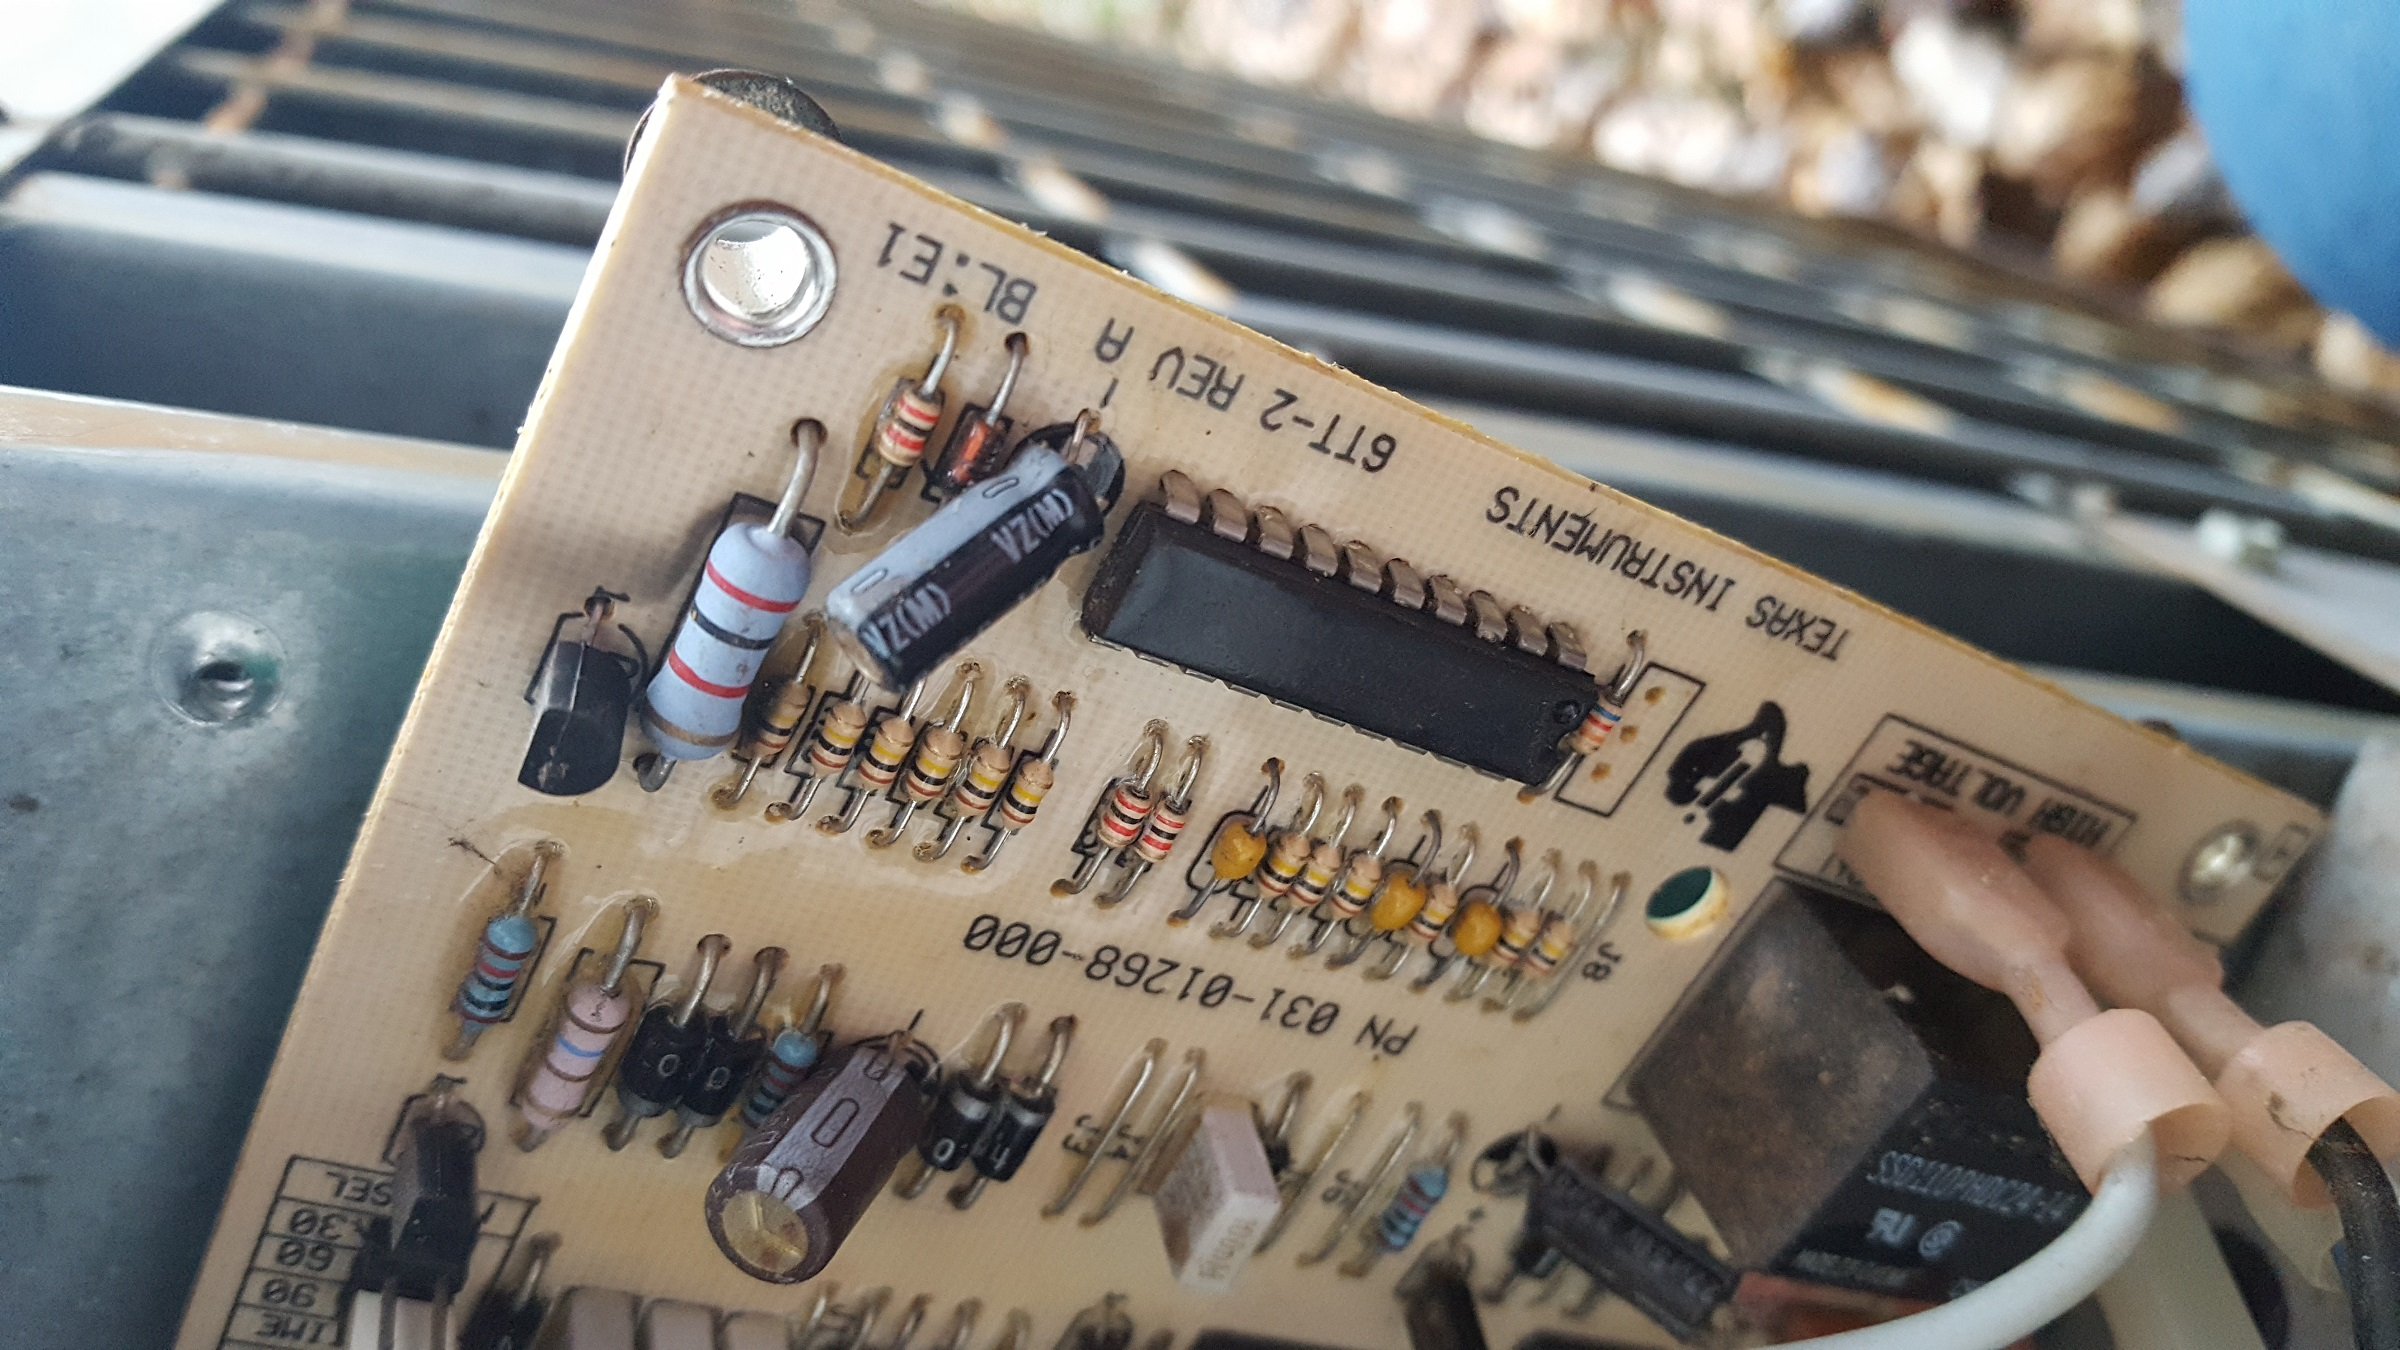 York HVAC blowing 5 amp fuse. Looking for some help please-20200310_174230.jpg